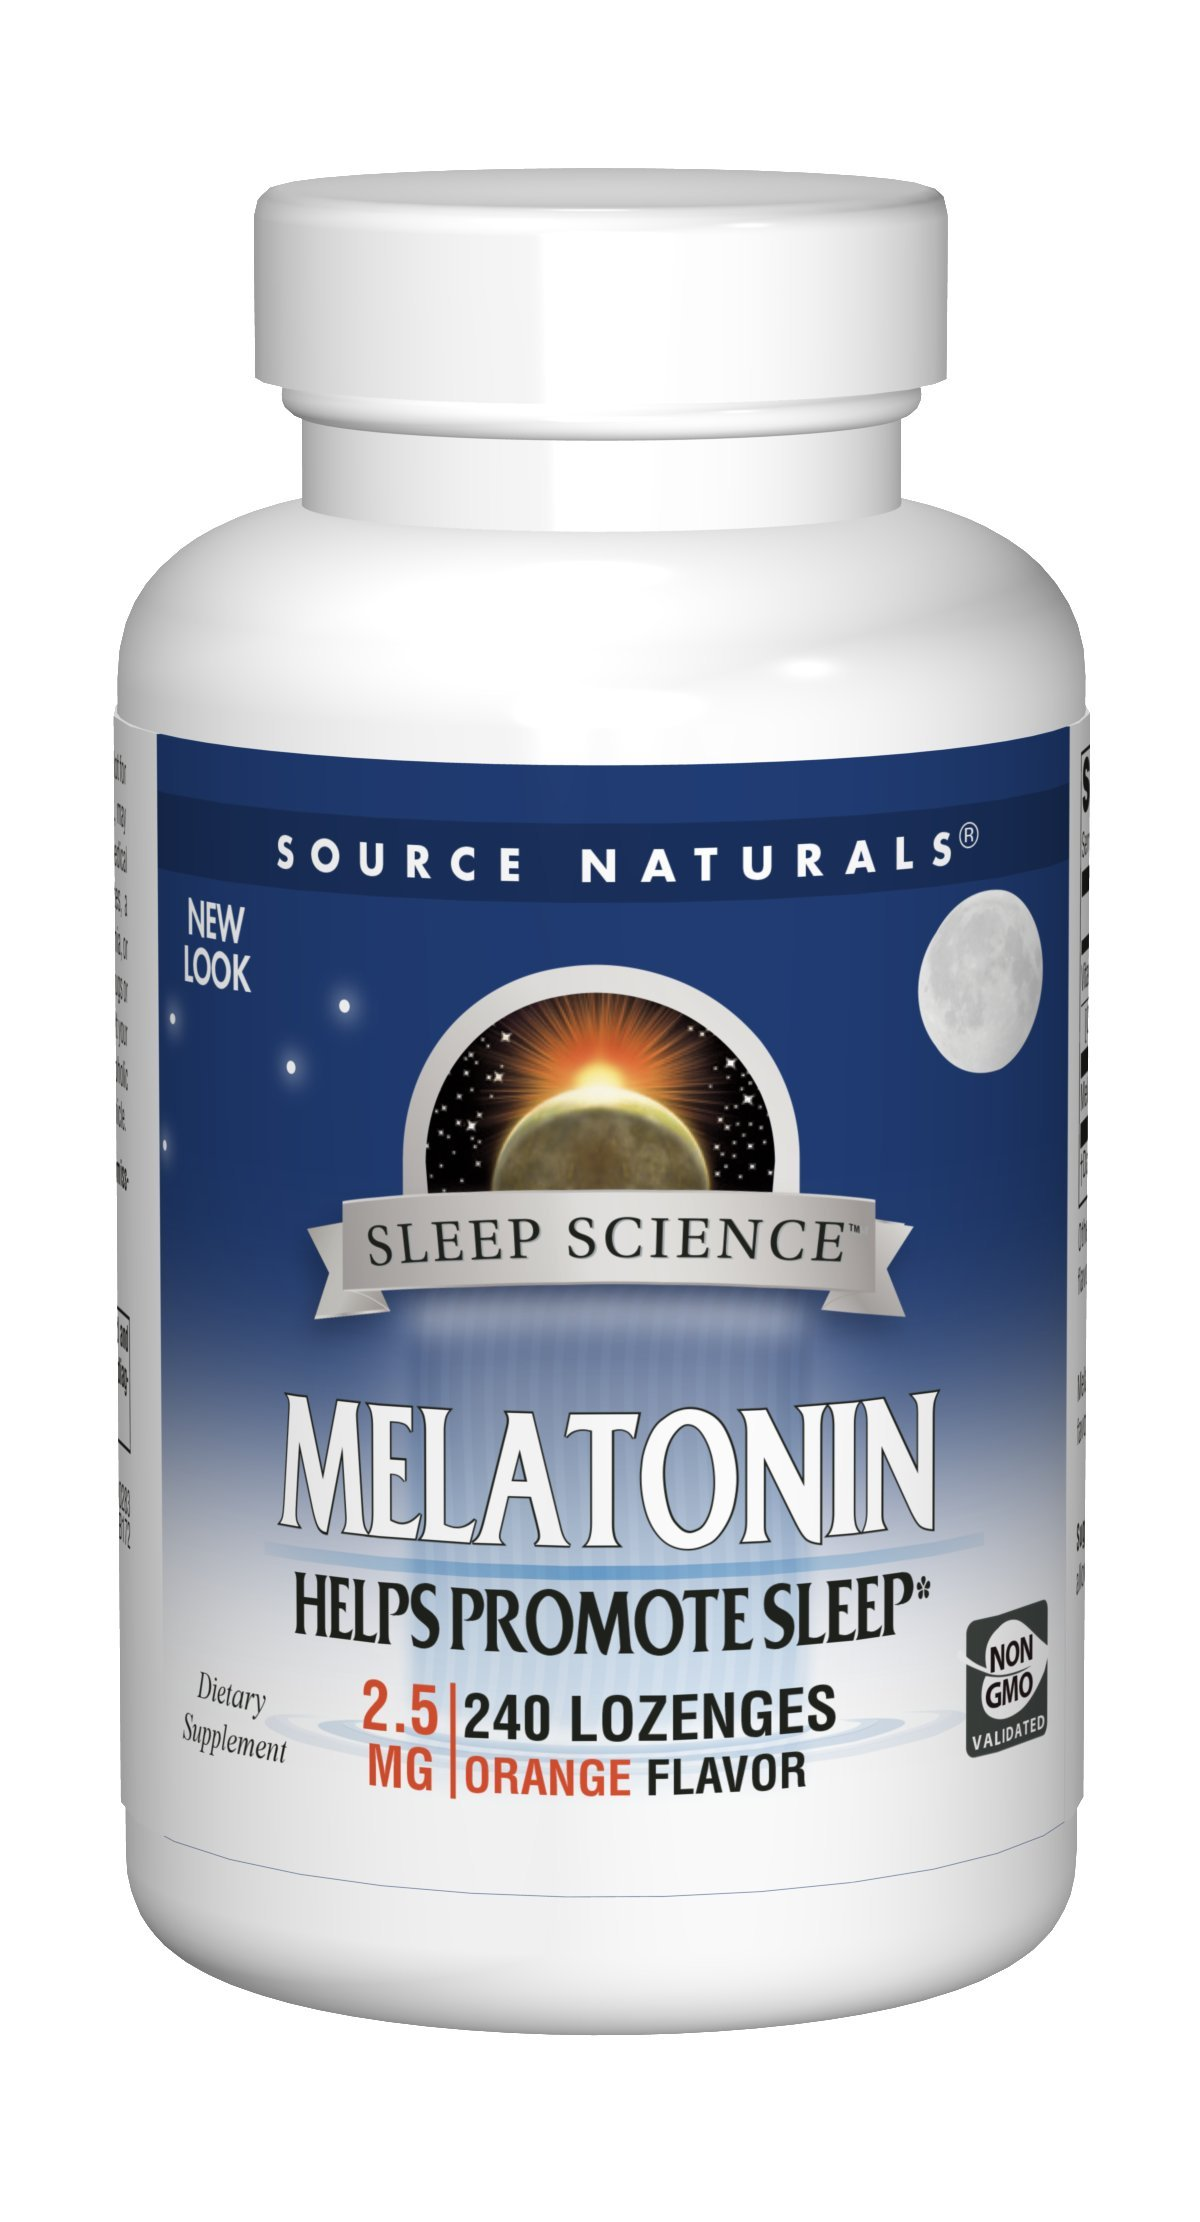 Amazon.com: Source Naturals Sleep Science Melatonin 2.5mg Orange Flavor - 240 Lozenges: Health & Personal Care